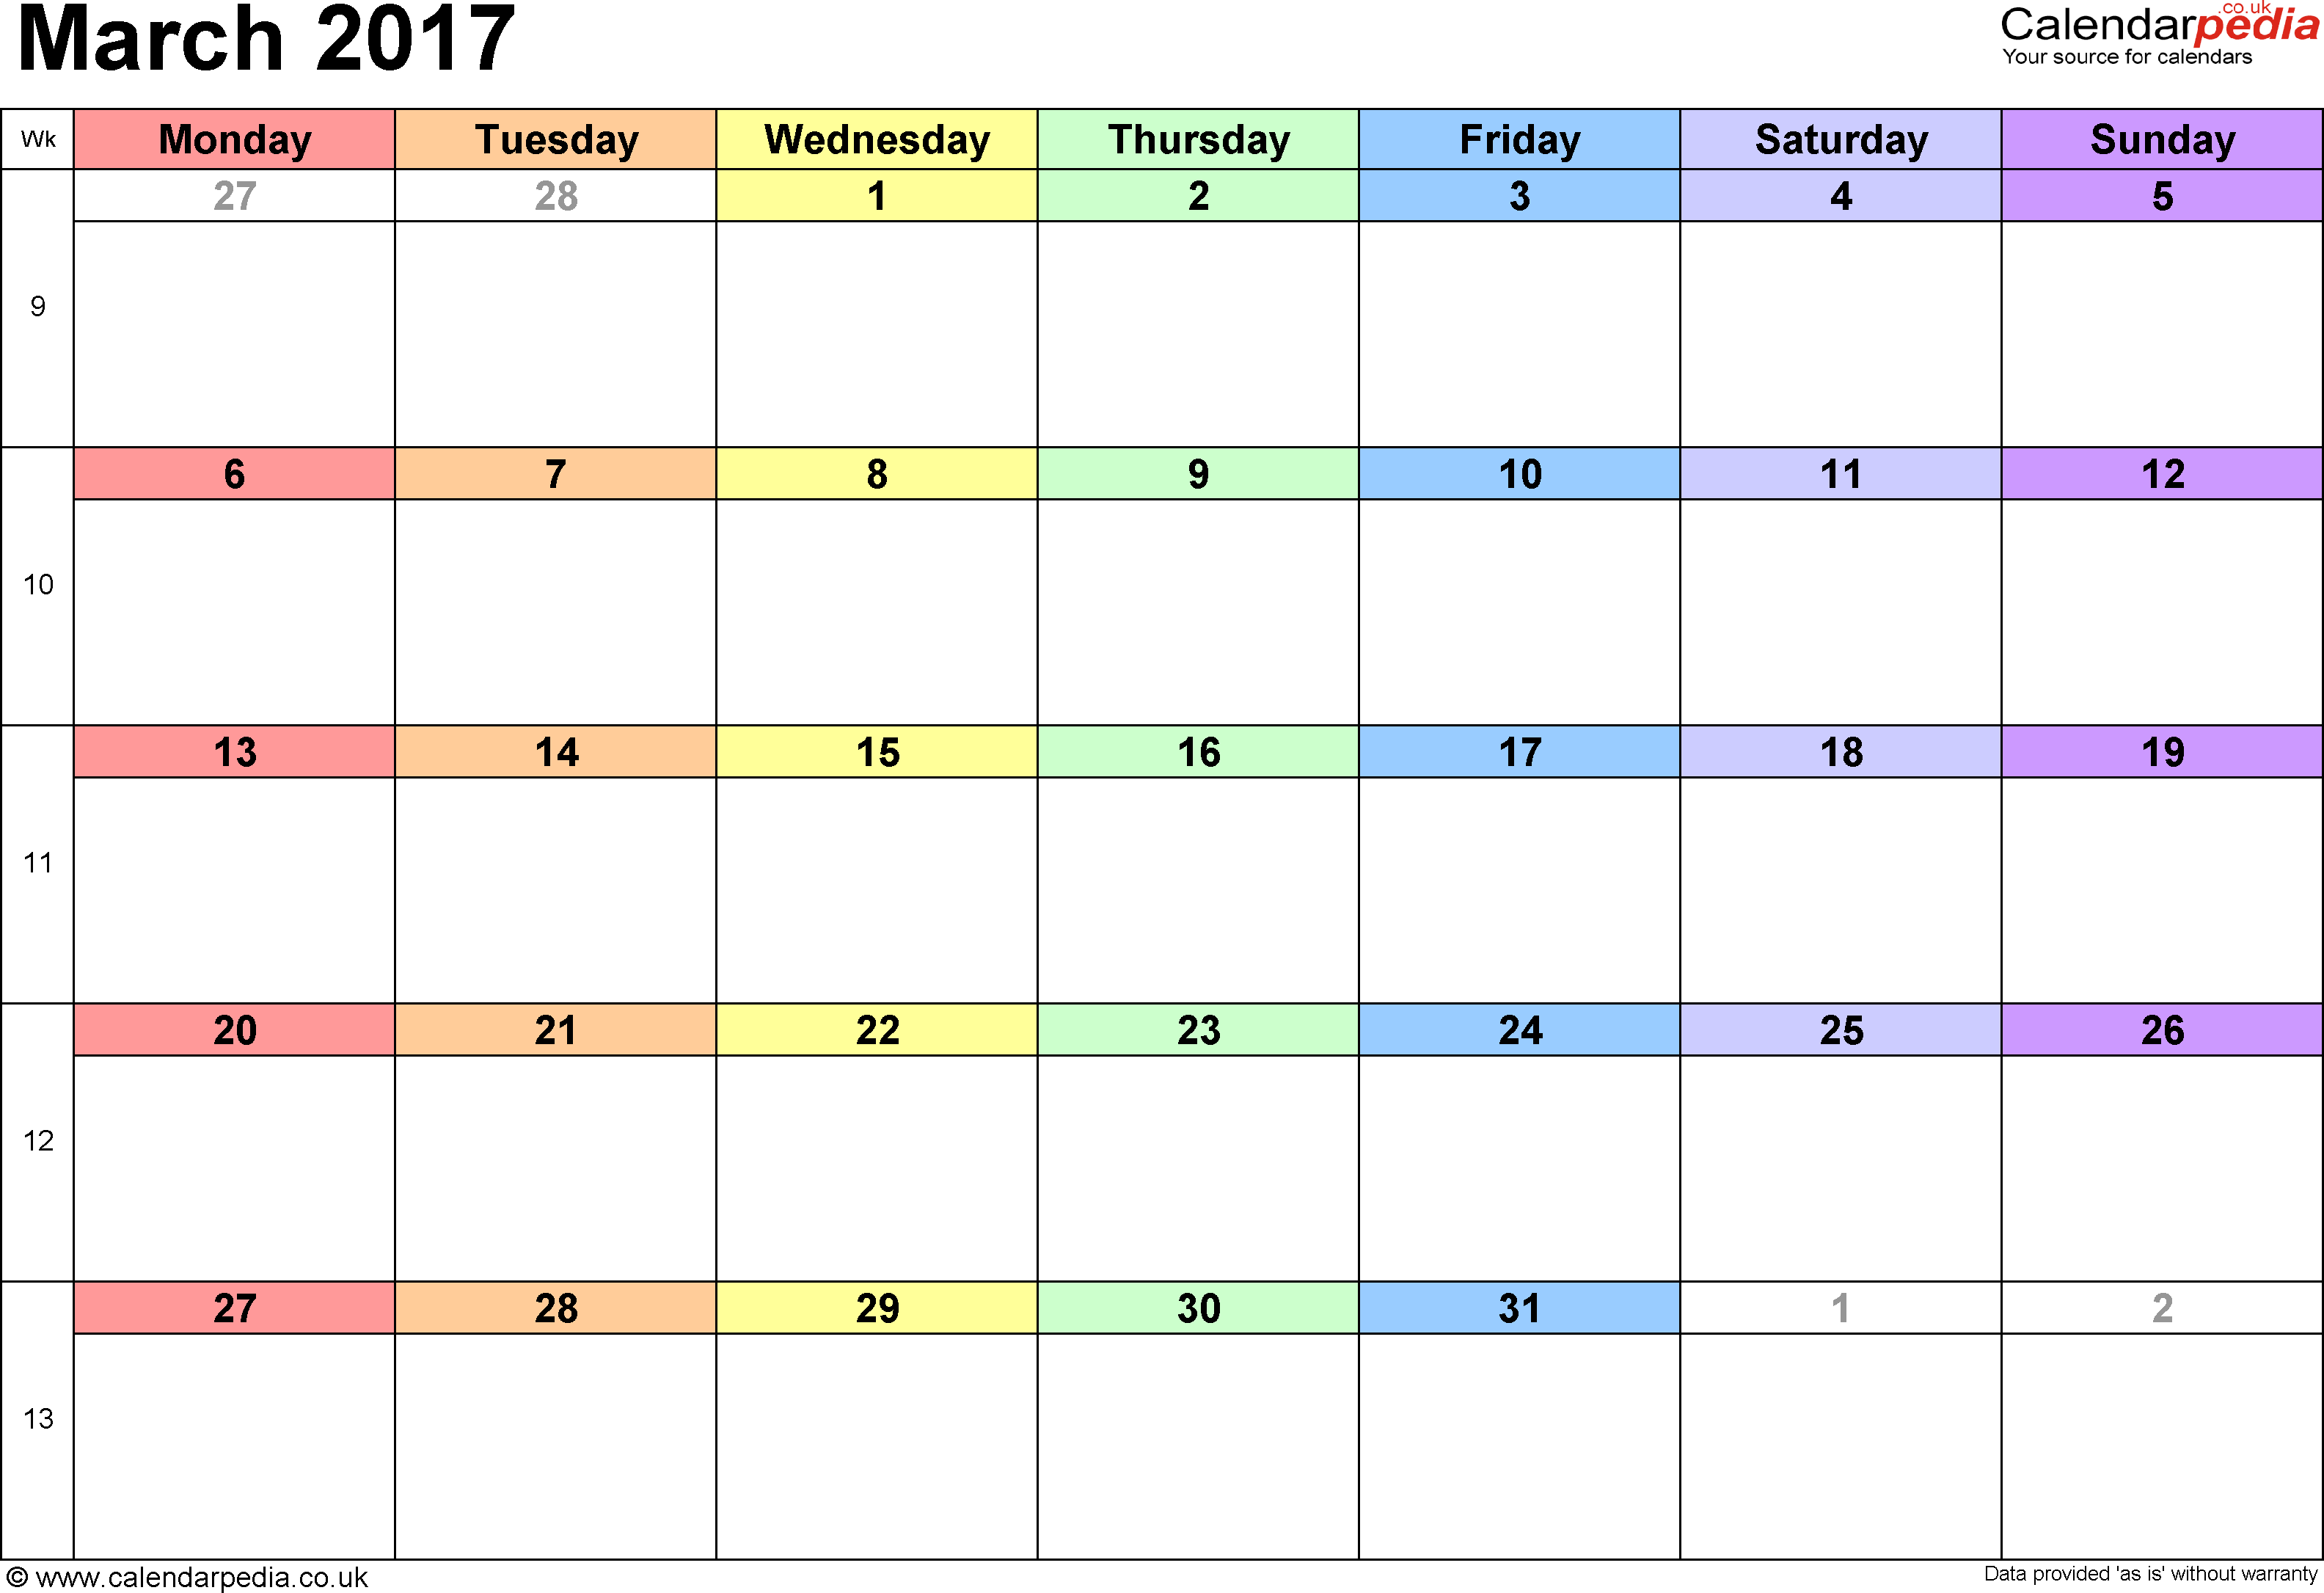 March 2016 Calendar with Holidays